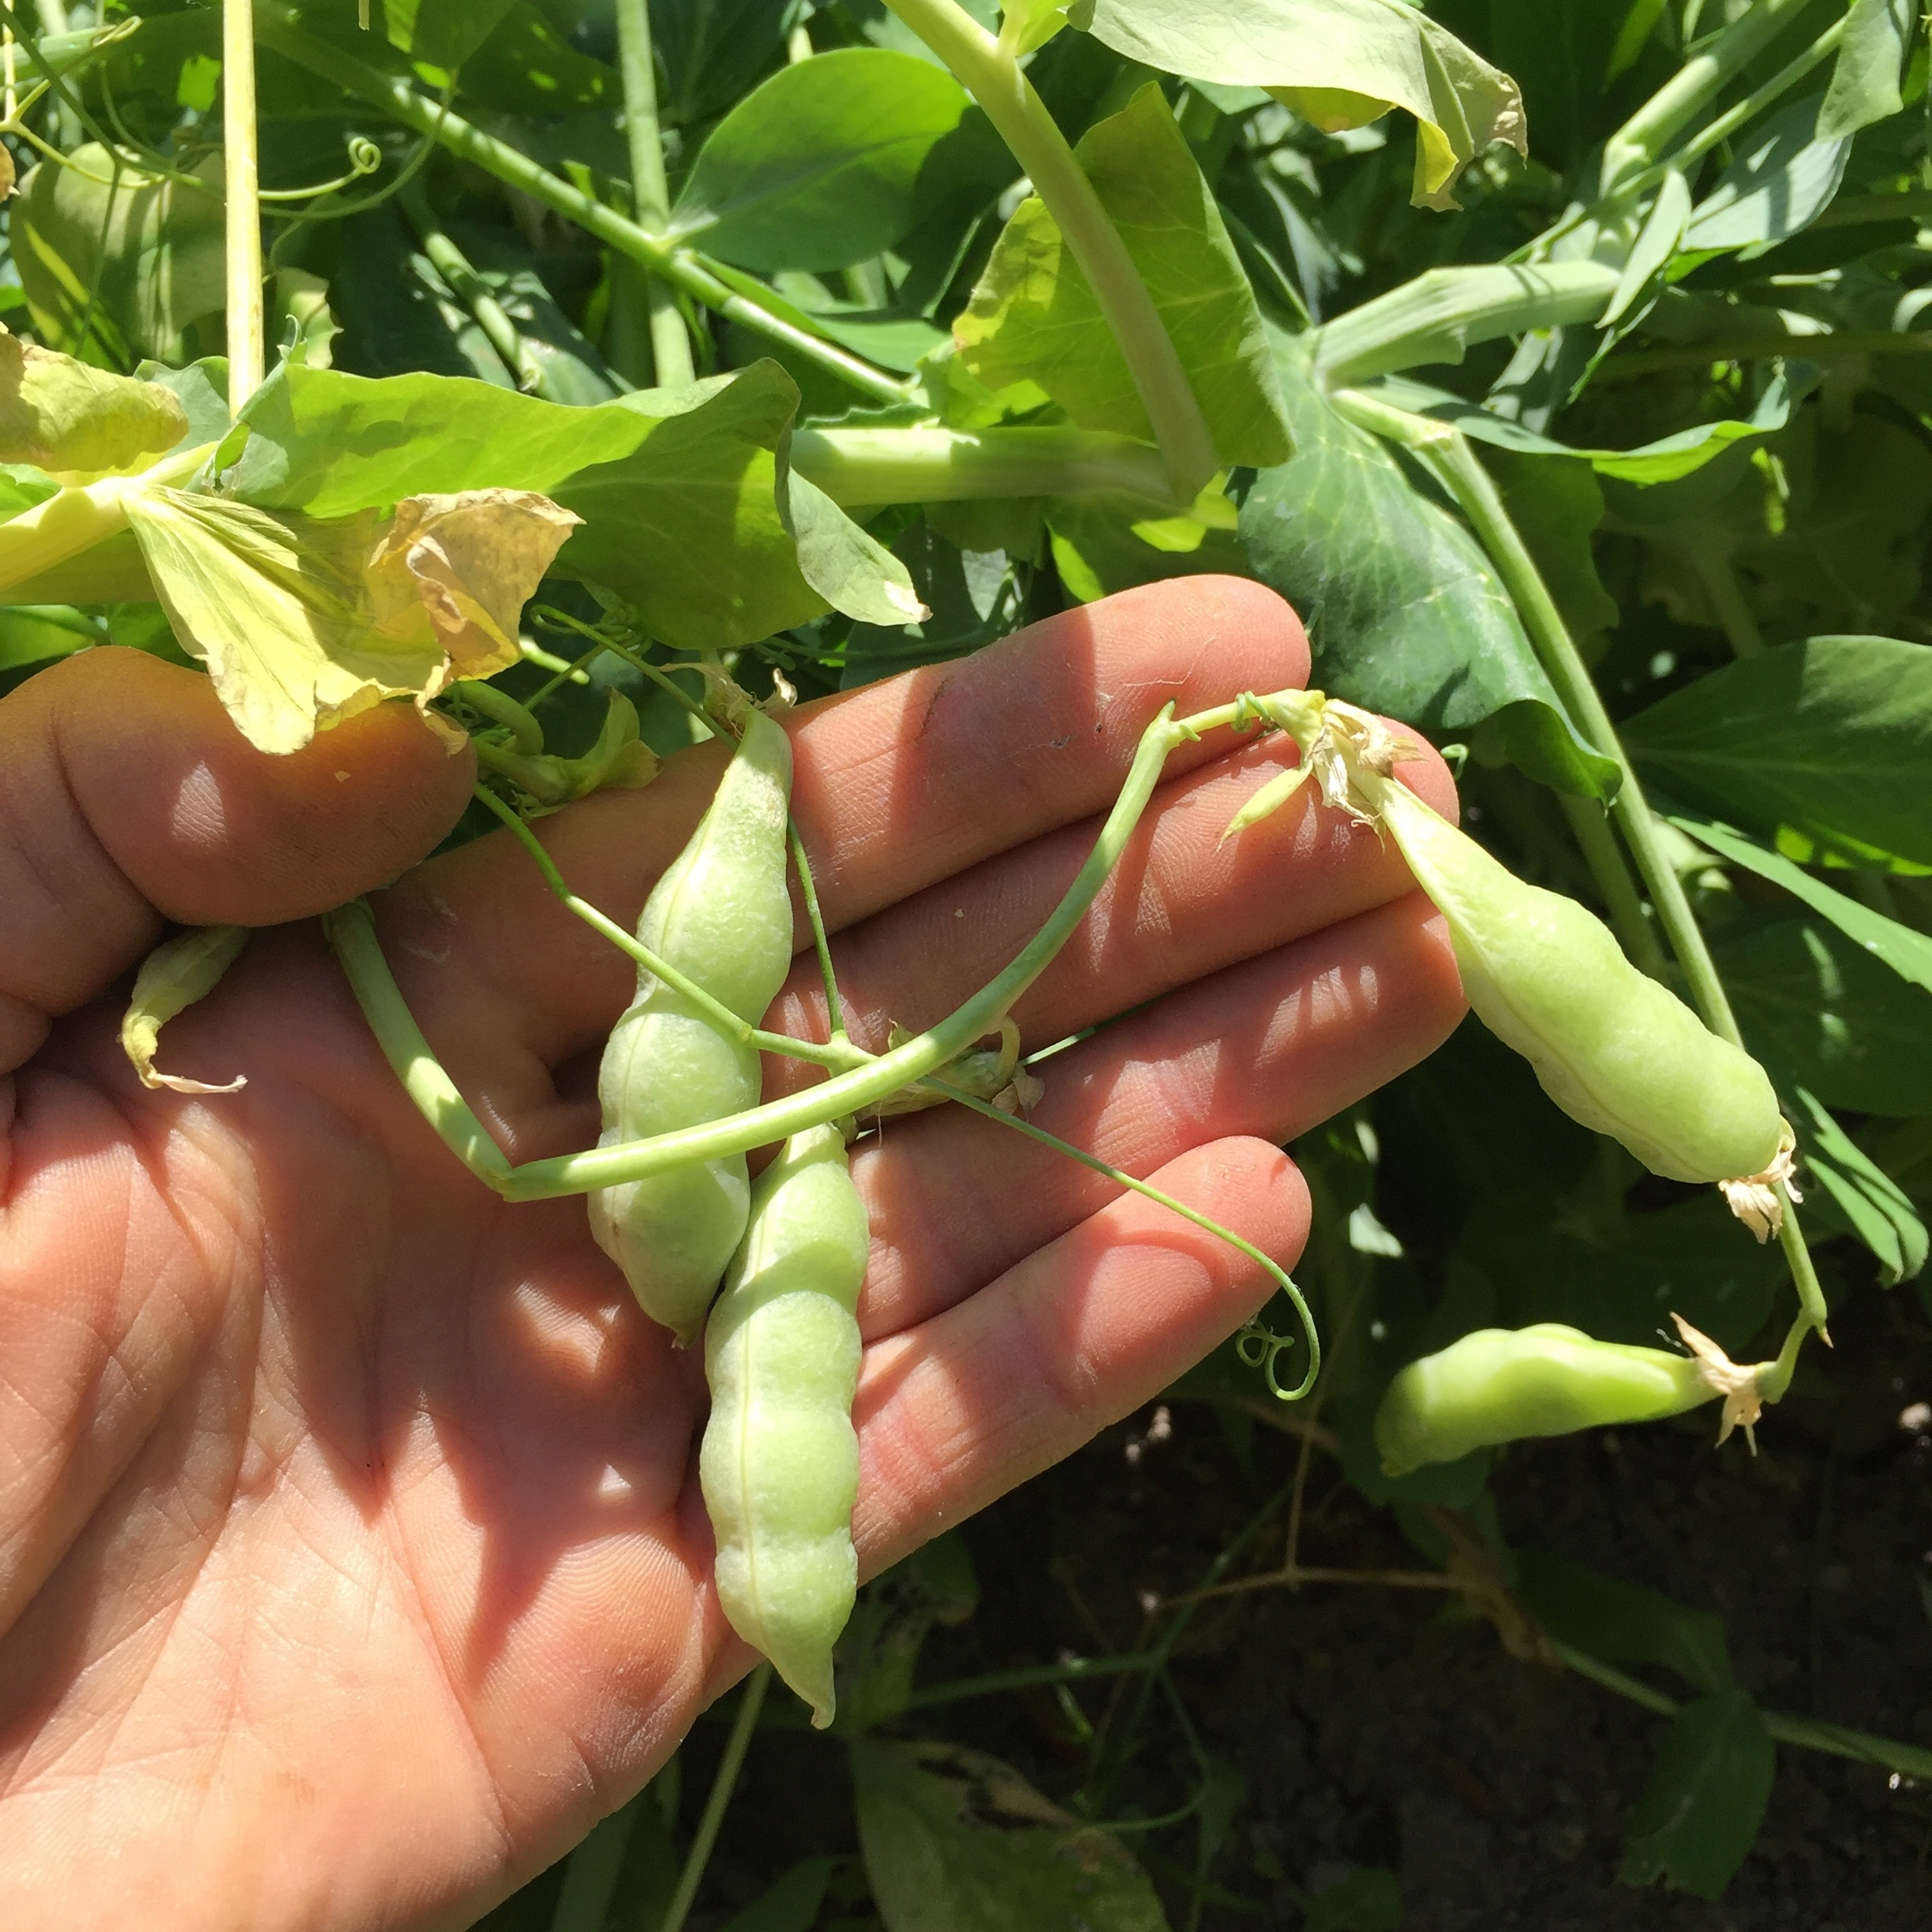 These pea pods are beginning to shrink against the seeds, but they're not quite ready yet.